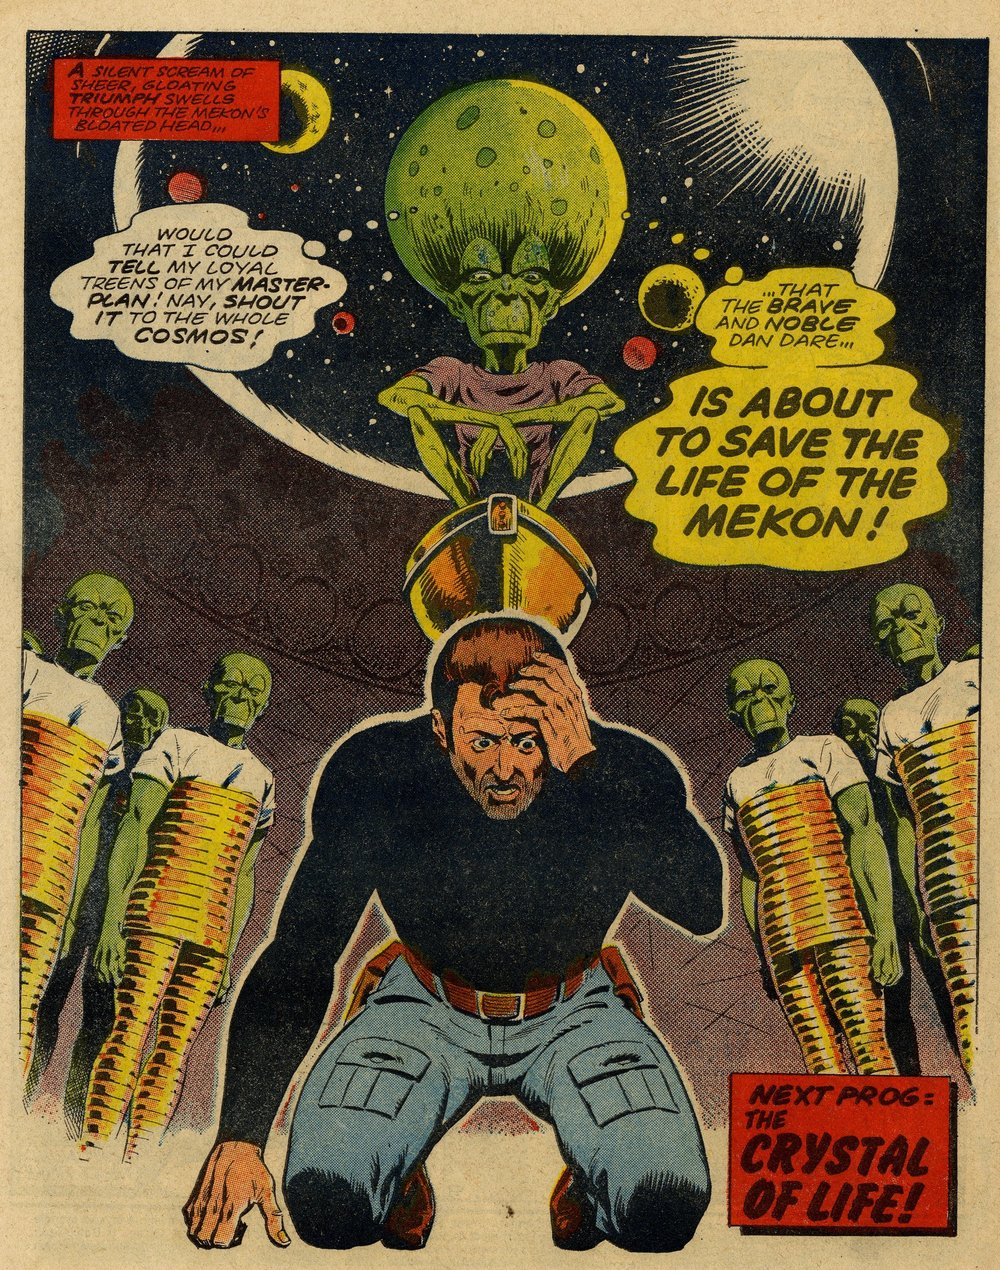 Dan Dare: 'Servant of Evil': Tom Tully (writer), Dave Gibbons (artist)